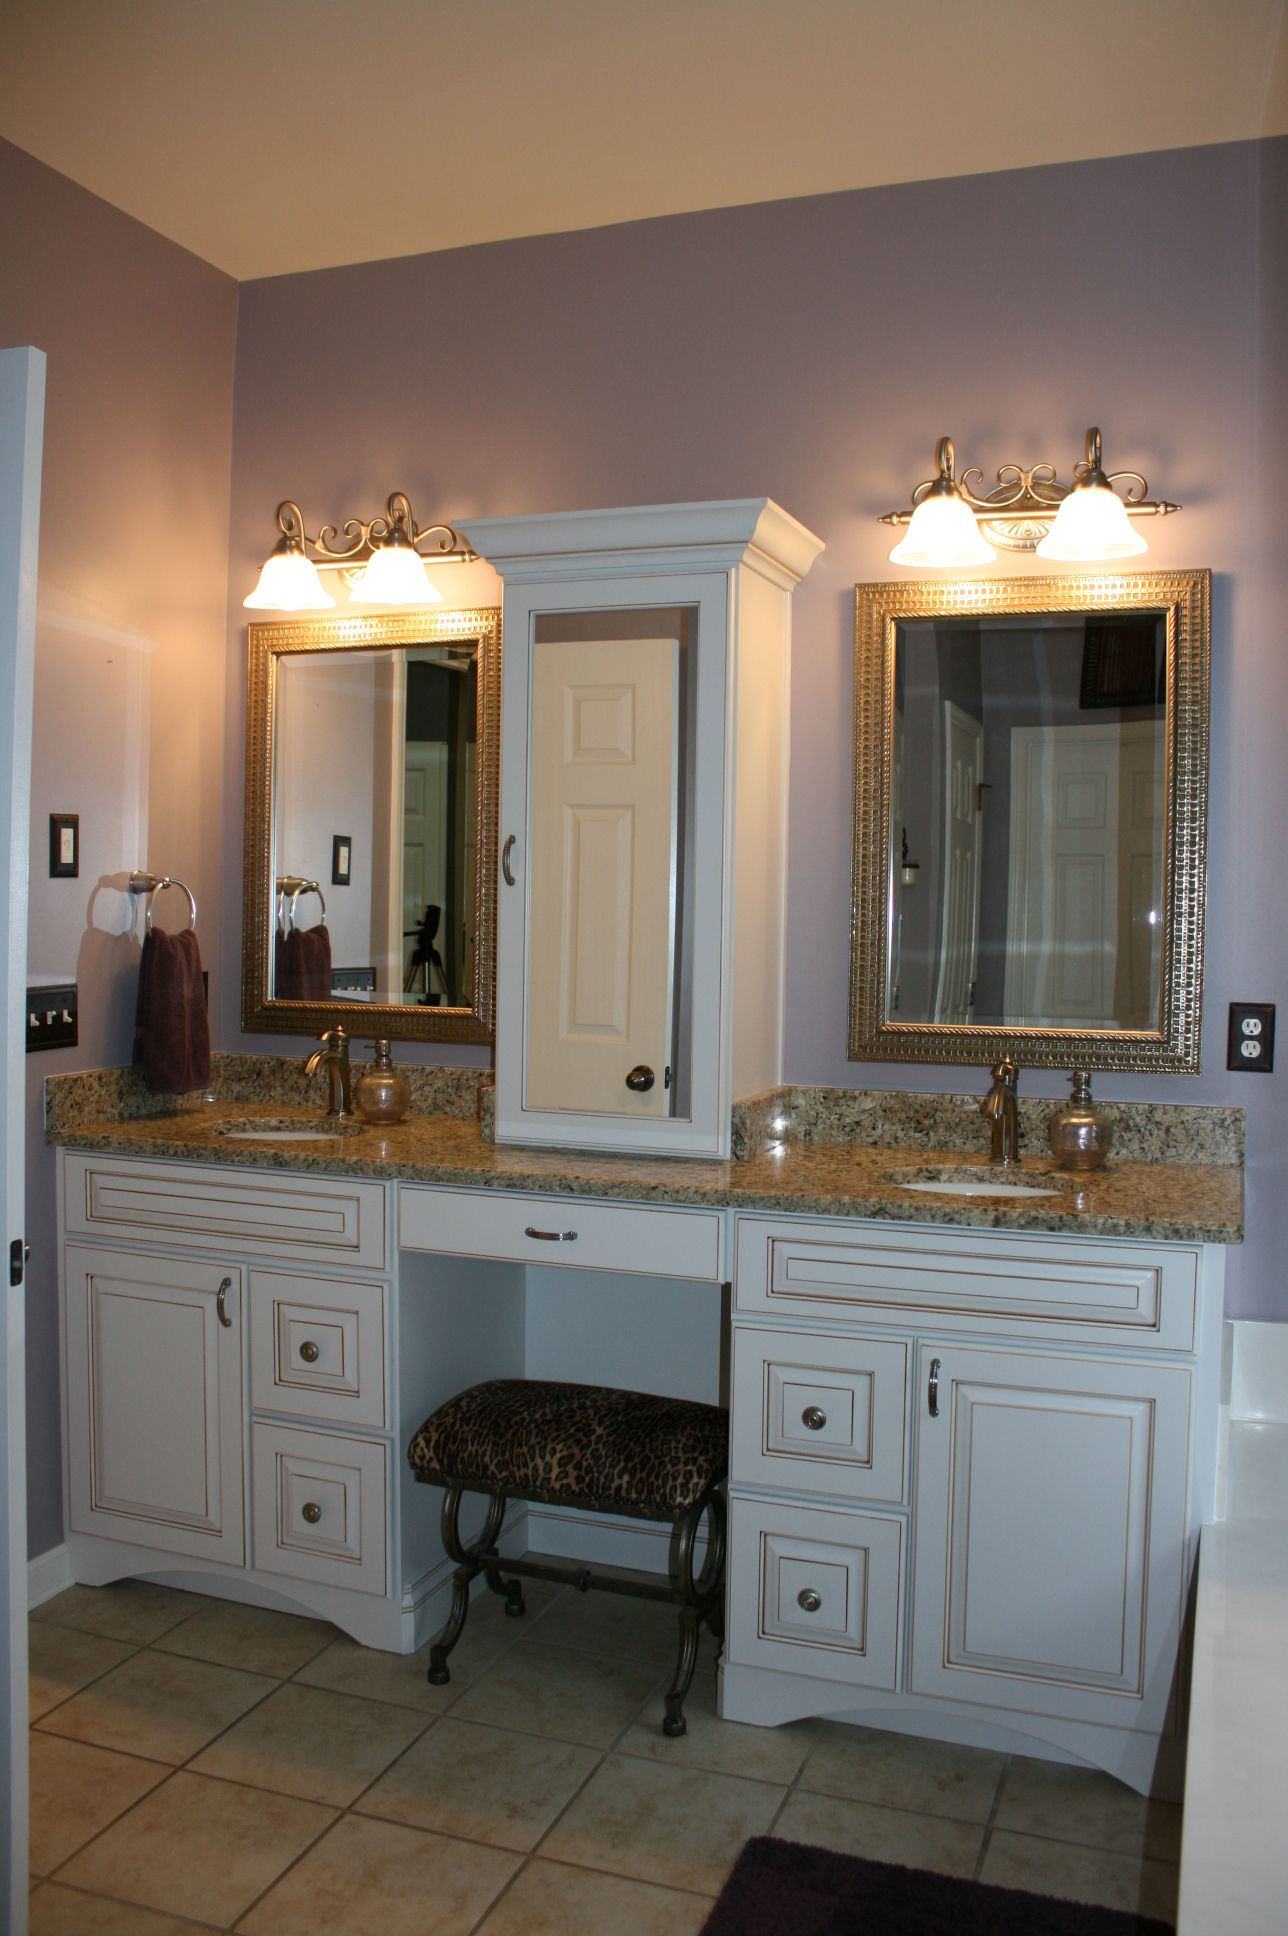 This vanity is from our Koch Classic line. The